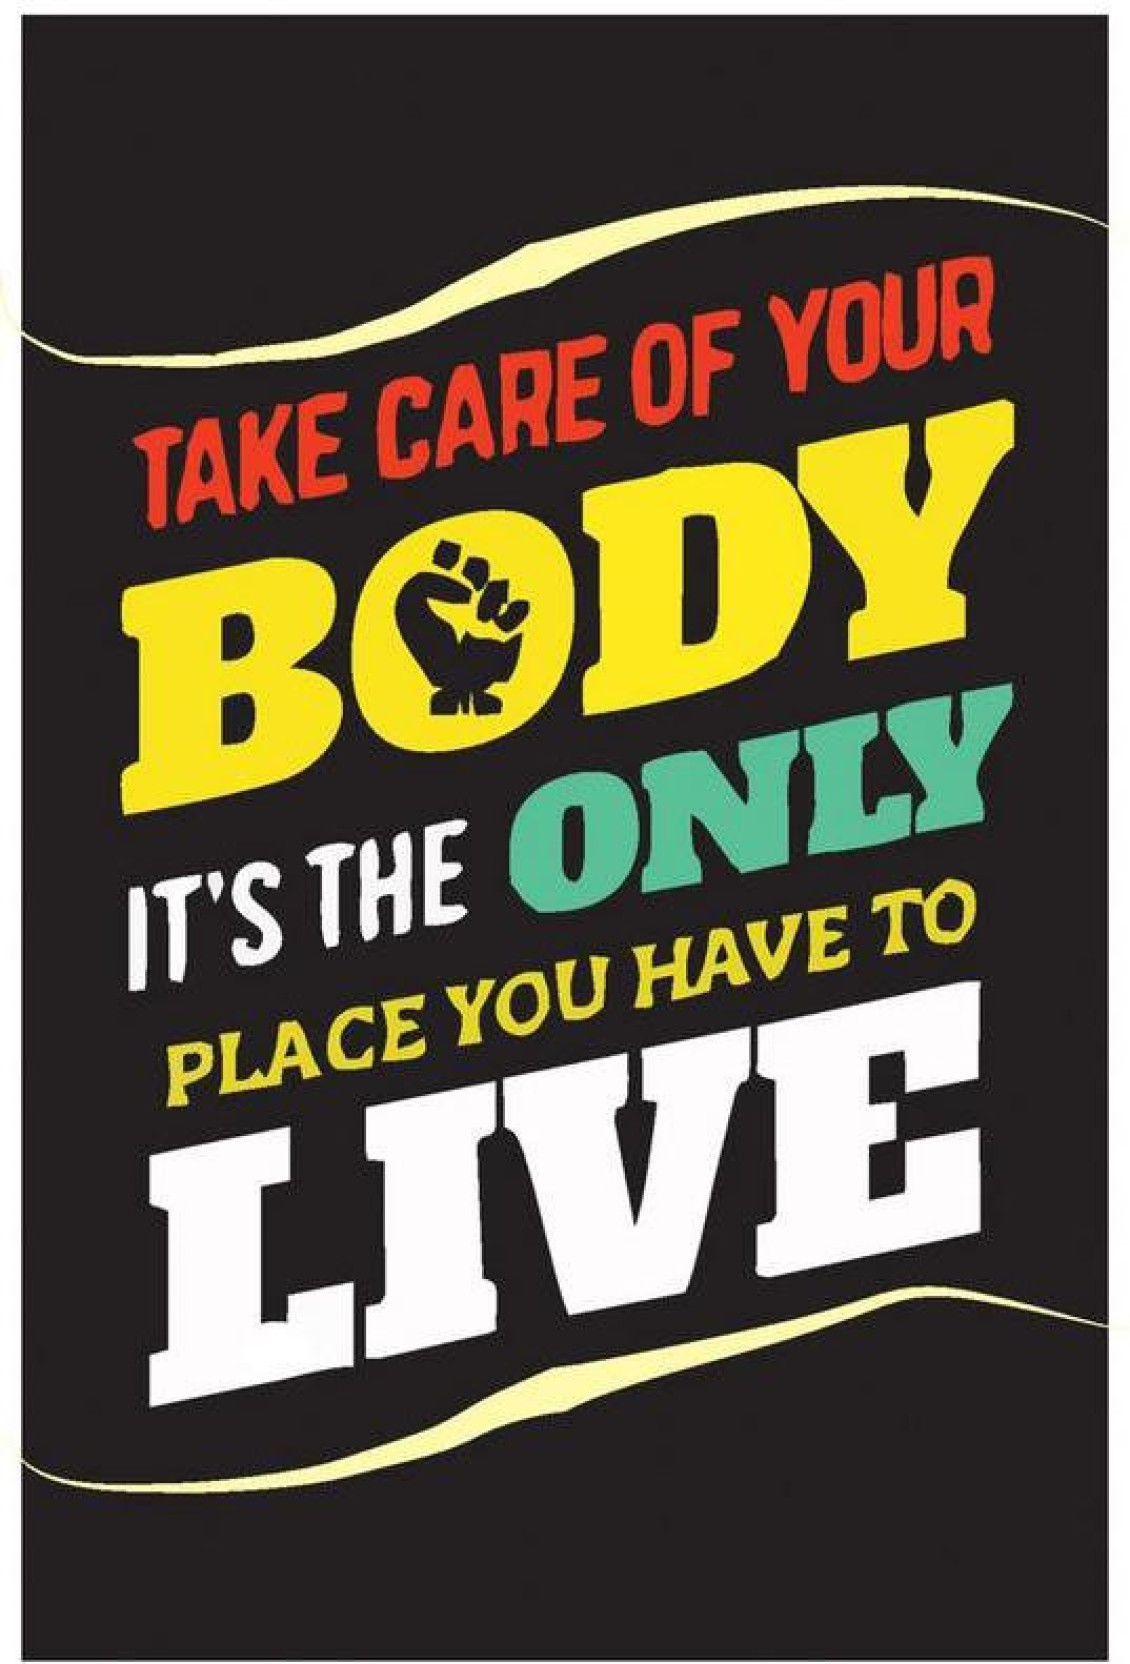 Take Care Of Your Body Fitness Poster | Gym Motivation